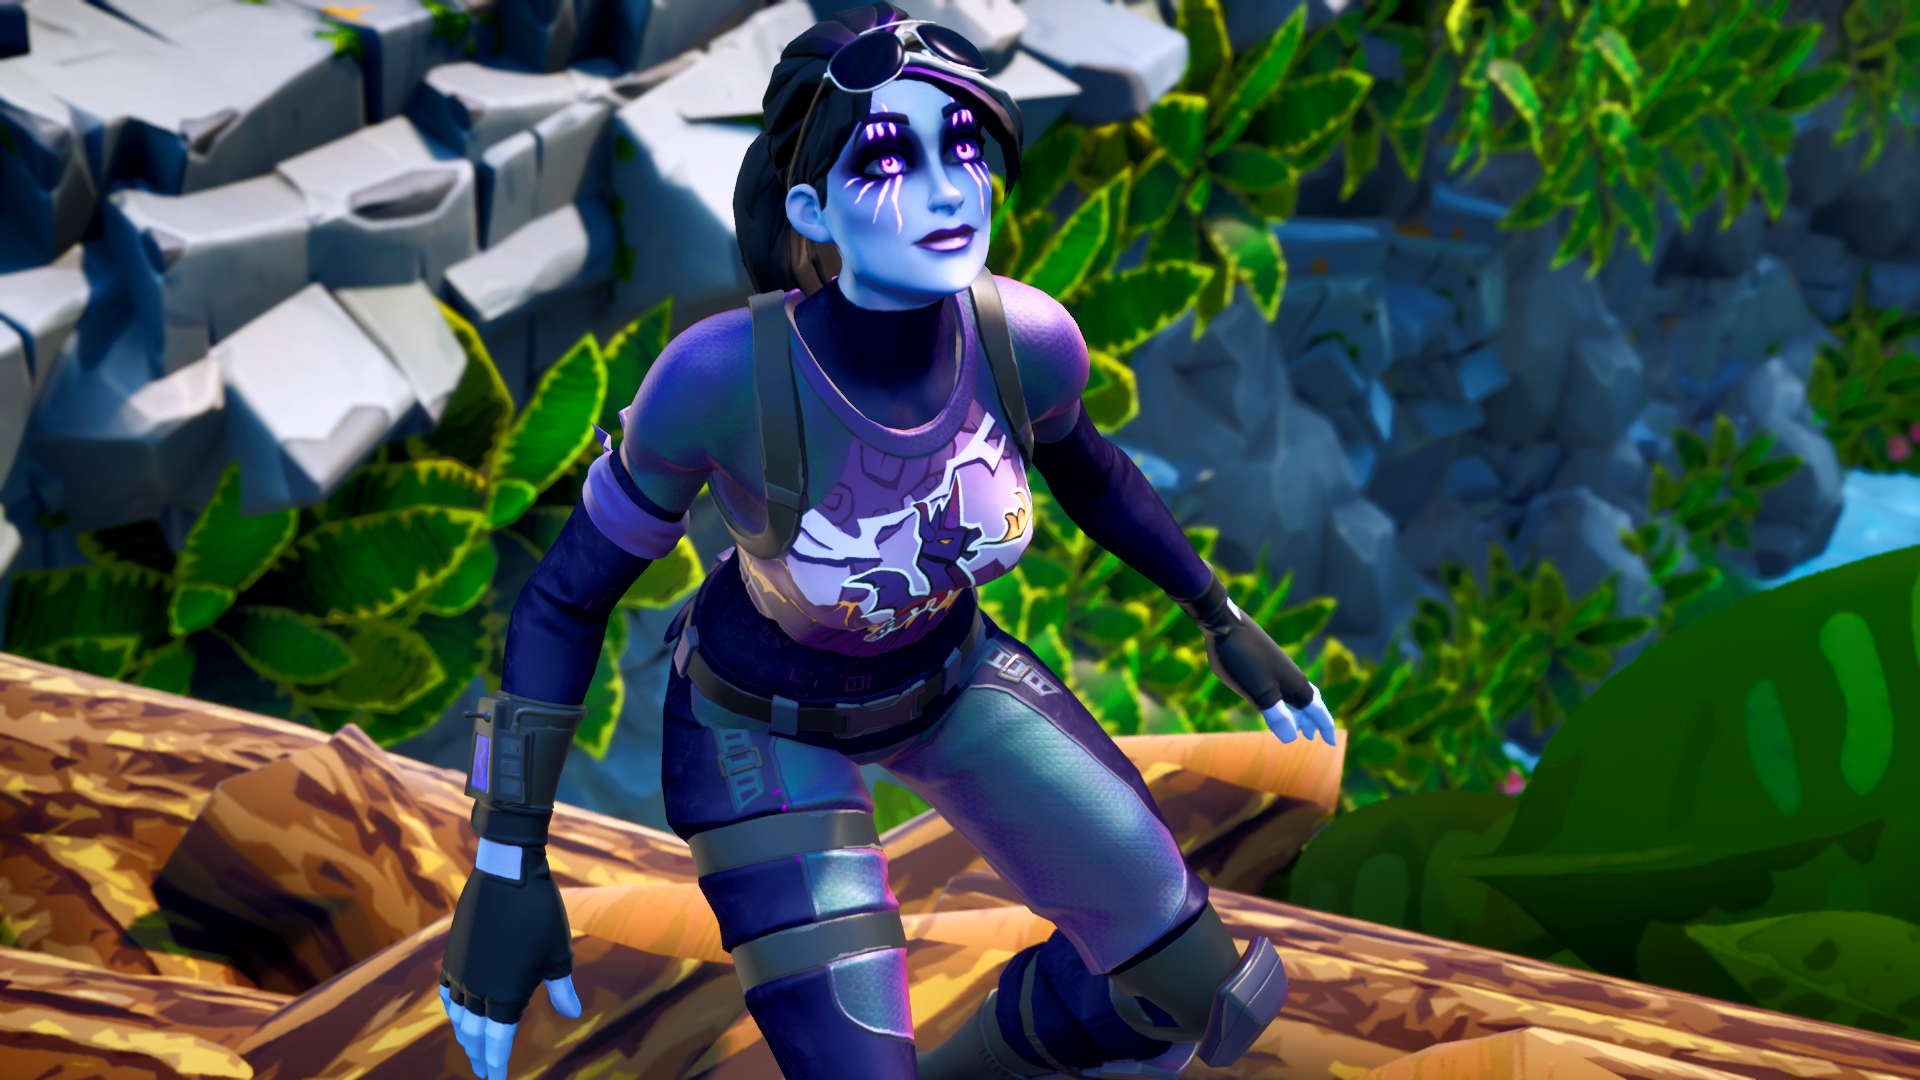 Days Before The Storm The First Unwatermarked Shots For You As A Thank You Free To Use Thanks For Sharing Dark Gamer Girl Epic Games Fortnite Fortnite